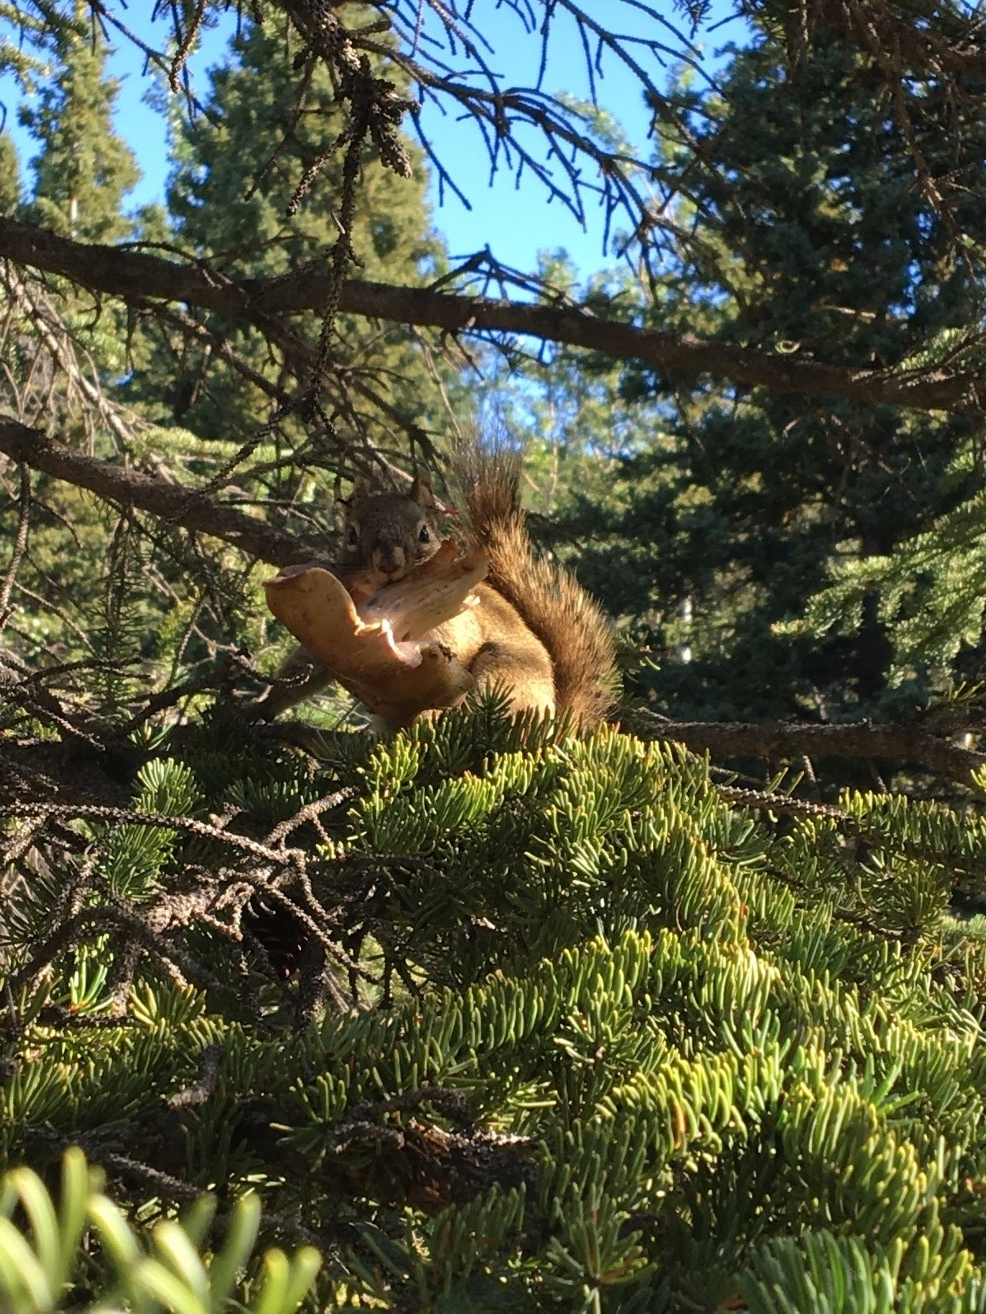 A Yukon squirrel collecting mushrooms